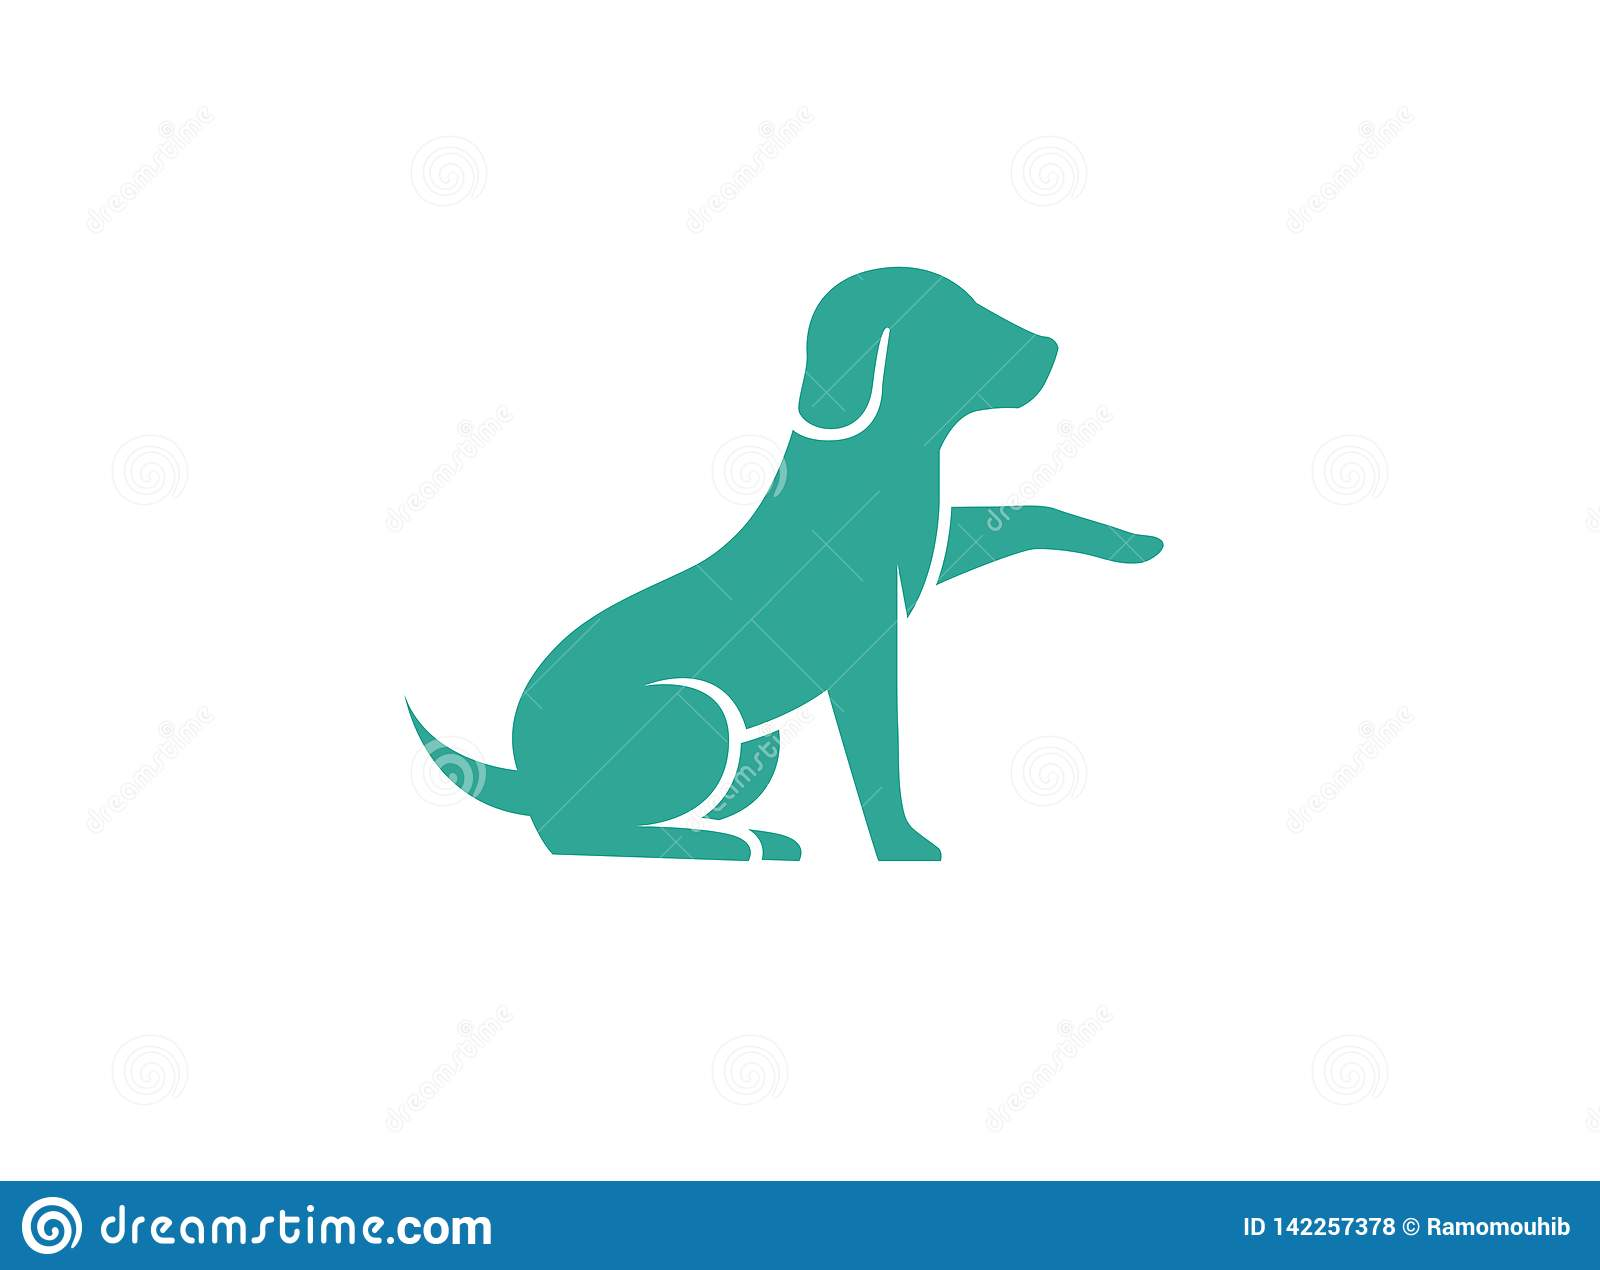 Cute dog sitting and Shaking hand logo